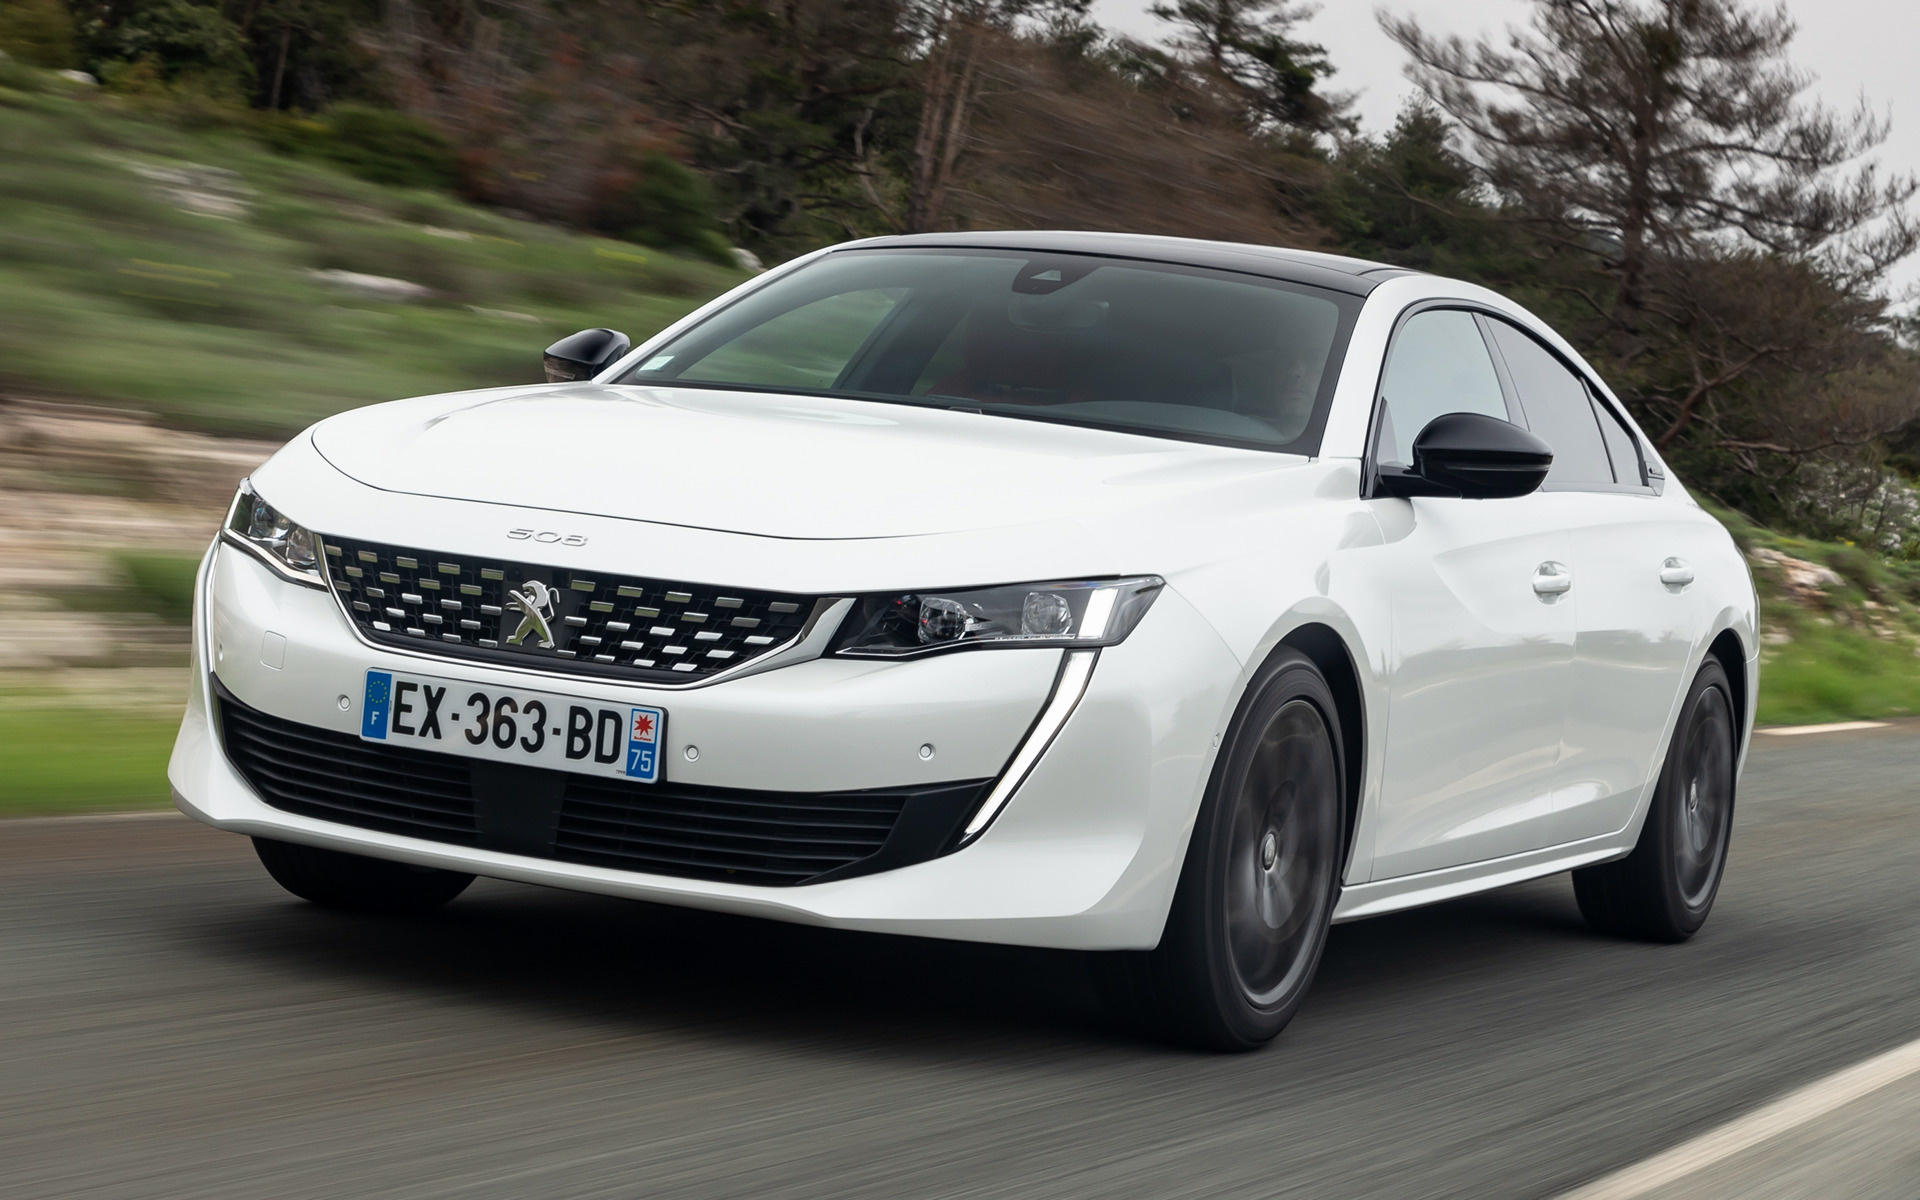 2018 Peugeot 508 Gt Line Wallpapers And Hd Images Car